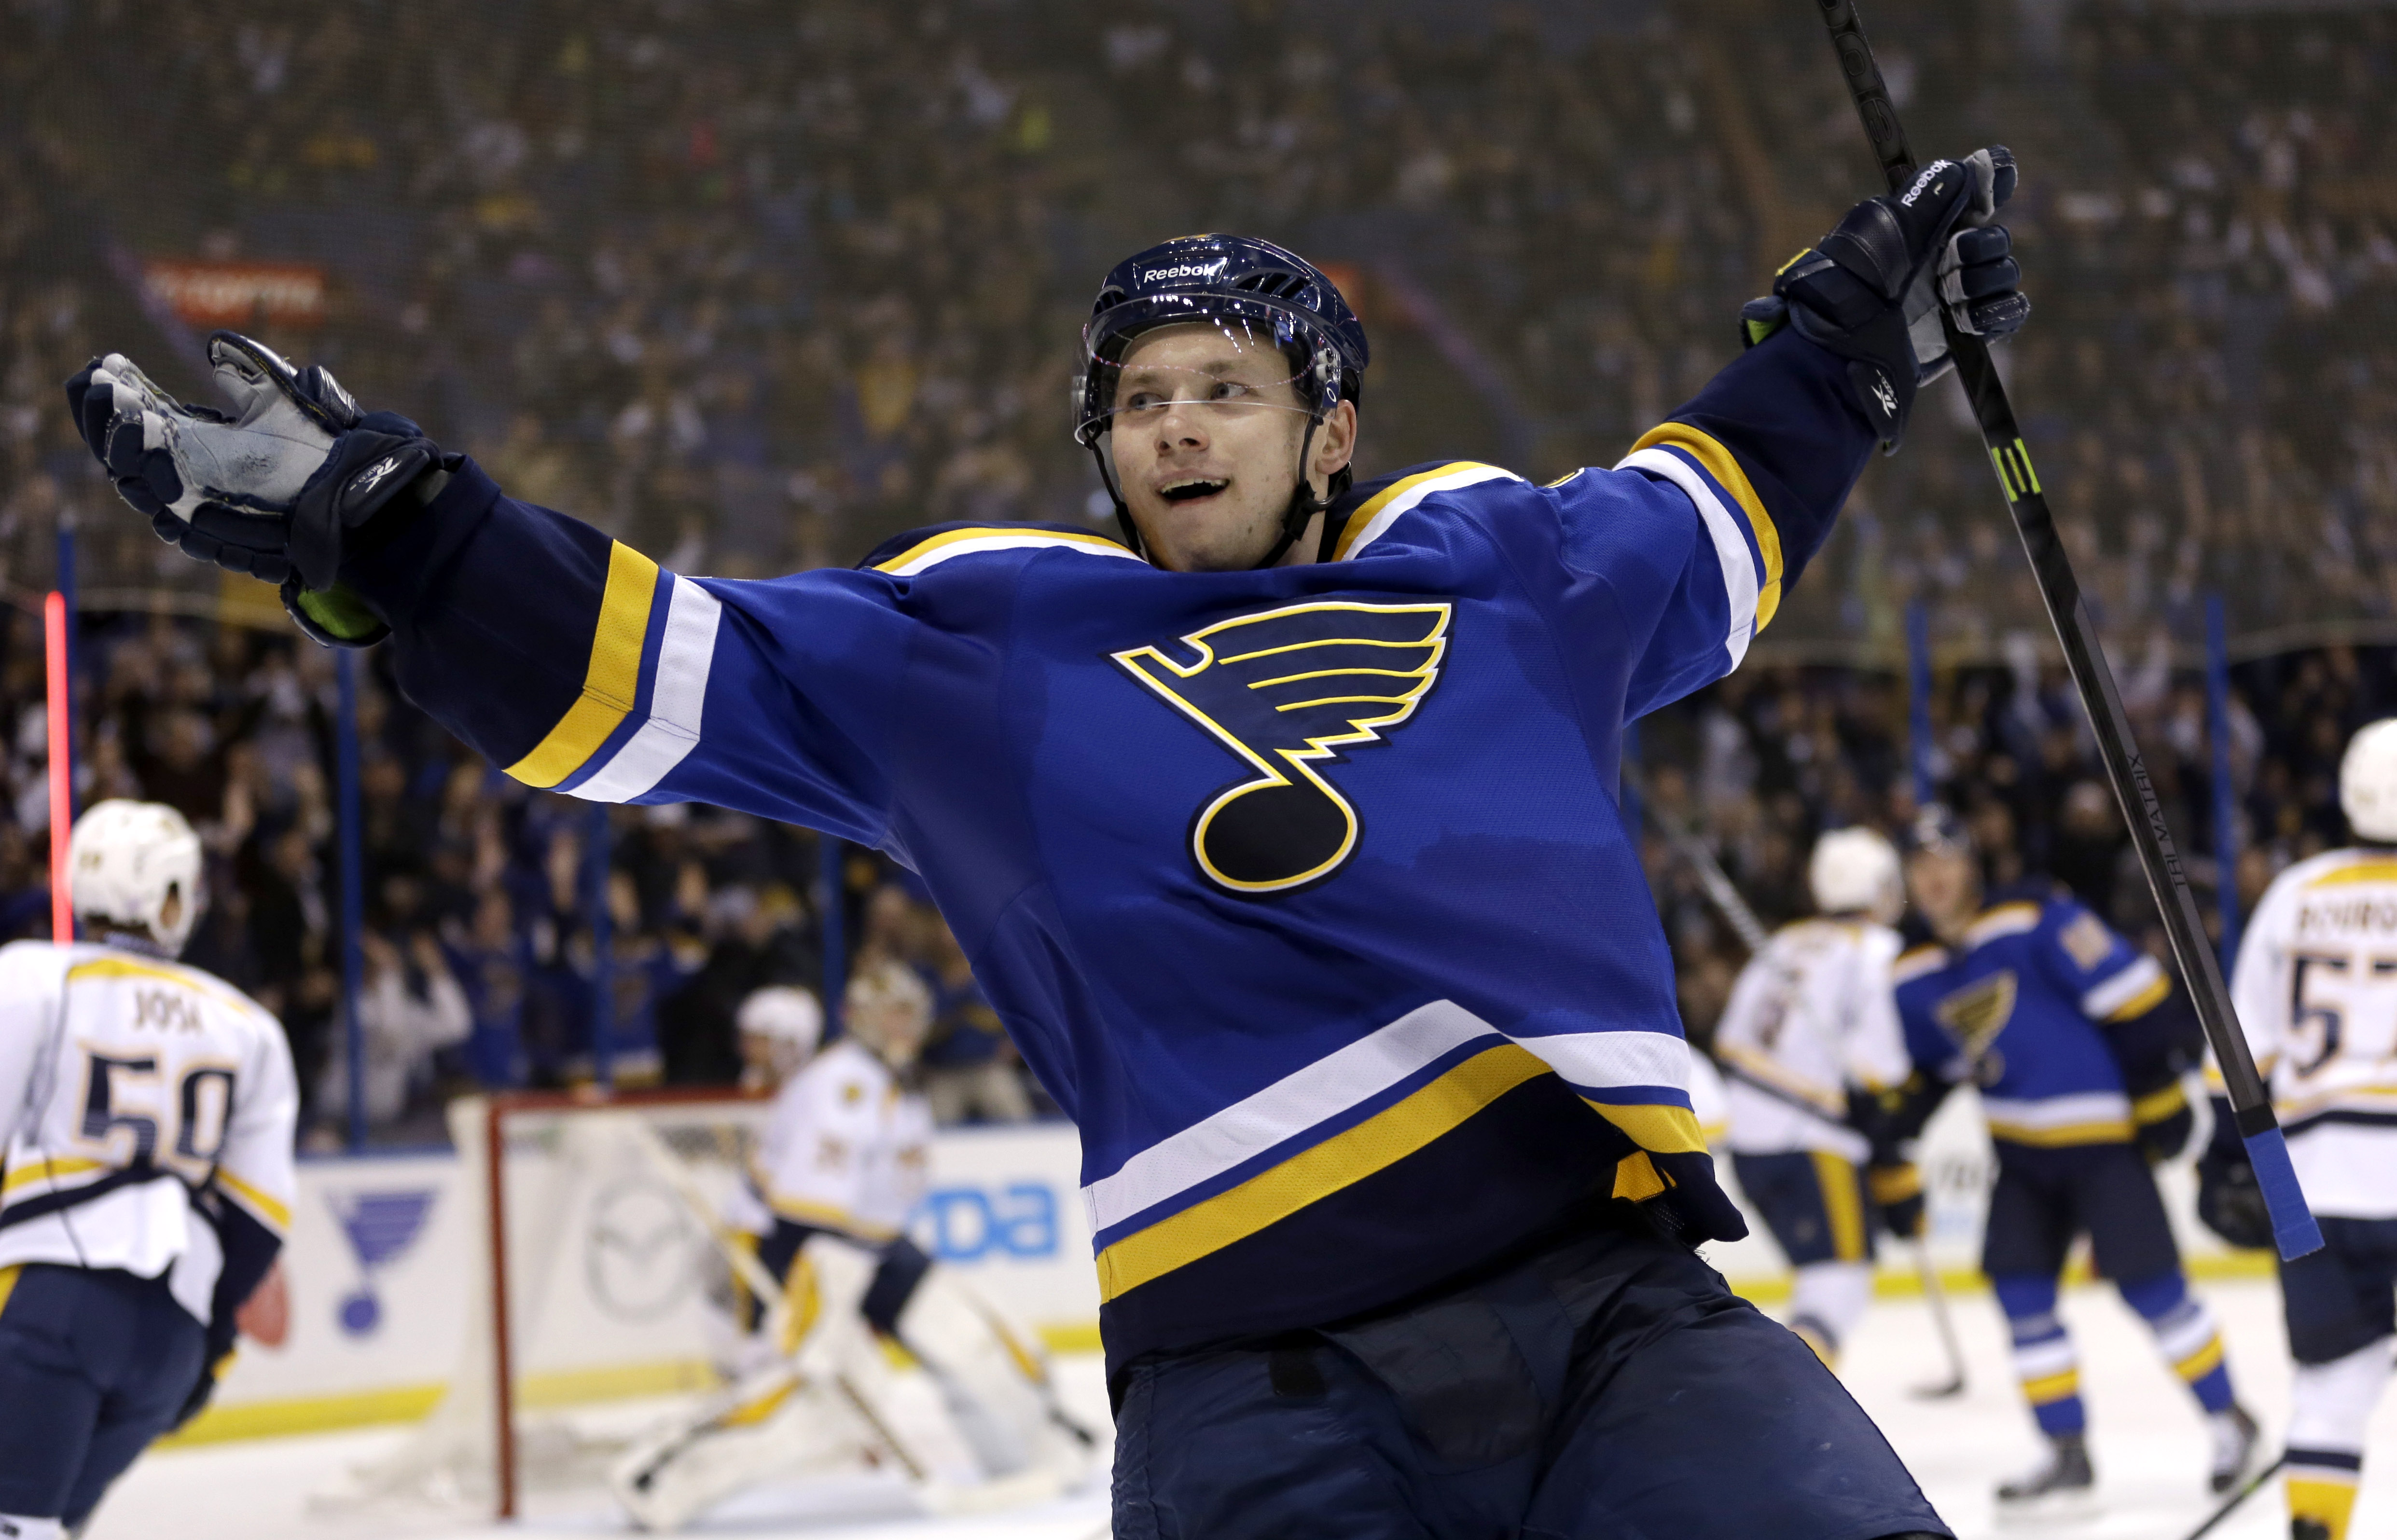 FILE - In this Nov. 13, 2014 file photo, St. Louis Blues' Vladimir Tarasenko, of Russia, celebrates after scoring during the second period of an NHL hockey game against the Nashville Predators in St. Louis. The Blues have signed Tarasenko to a new eight-y